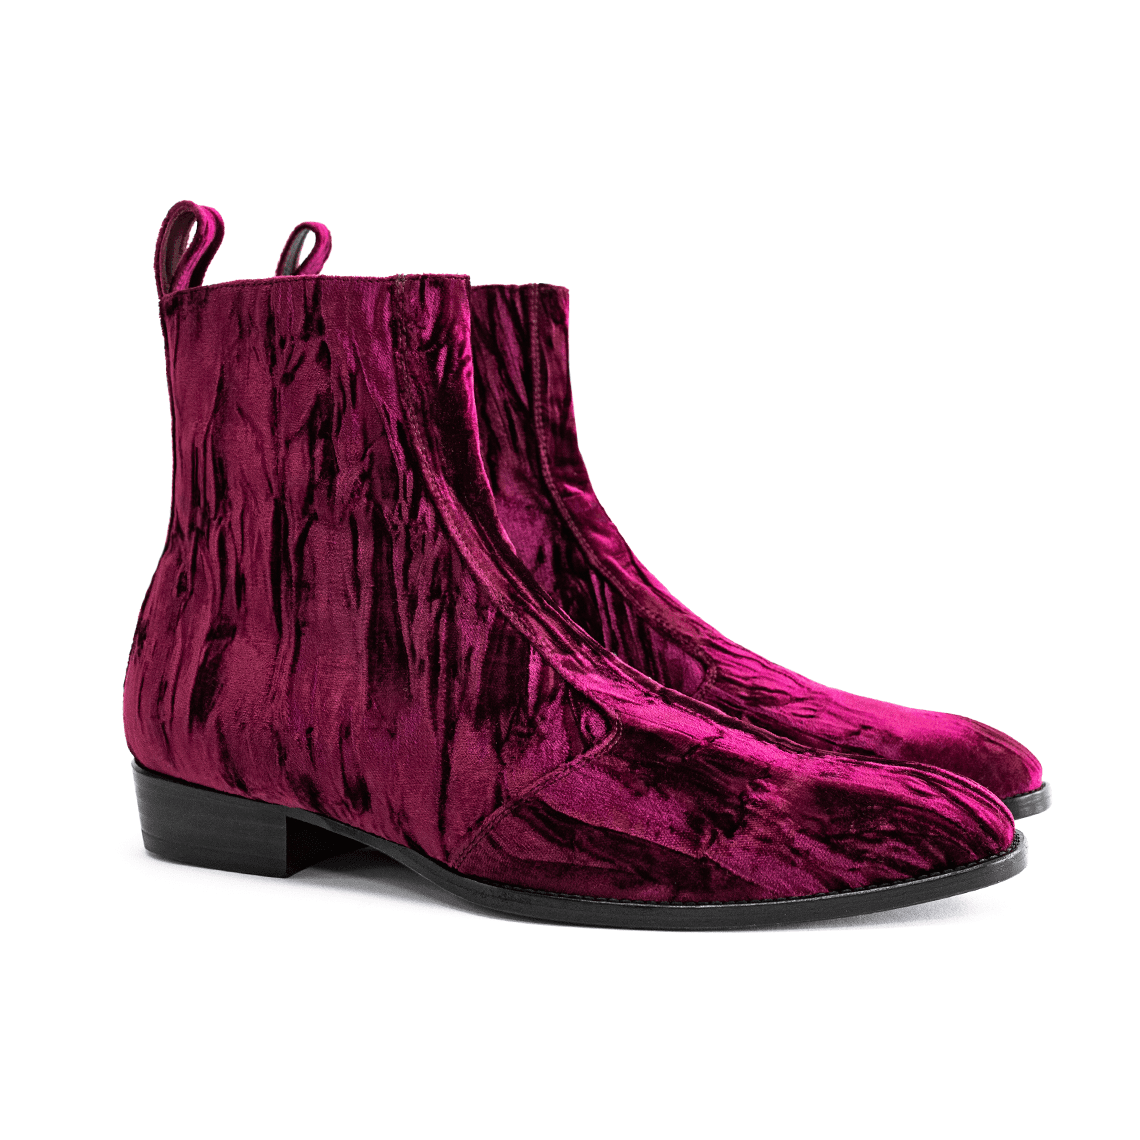 THE WINE REGGIO SIDEZIP BOOTS